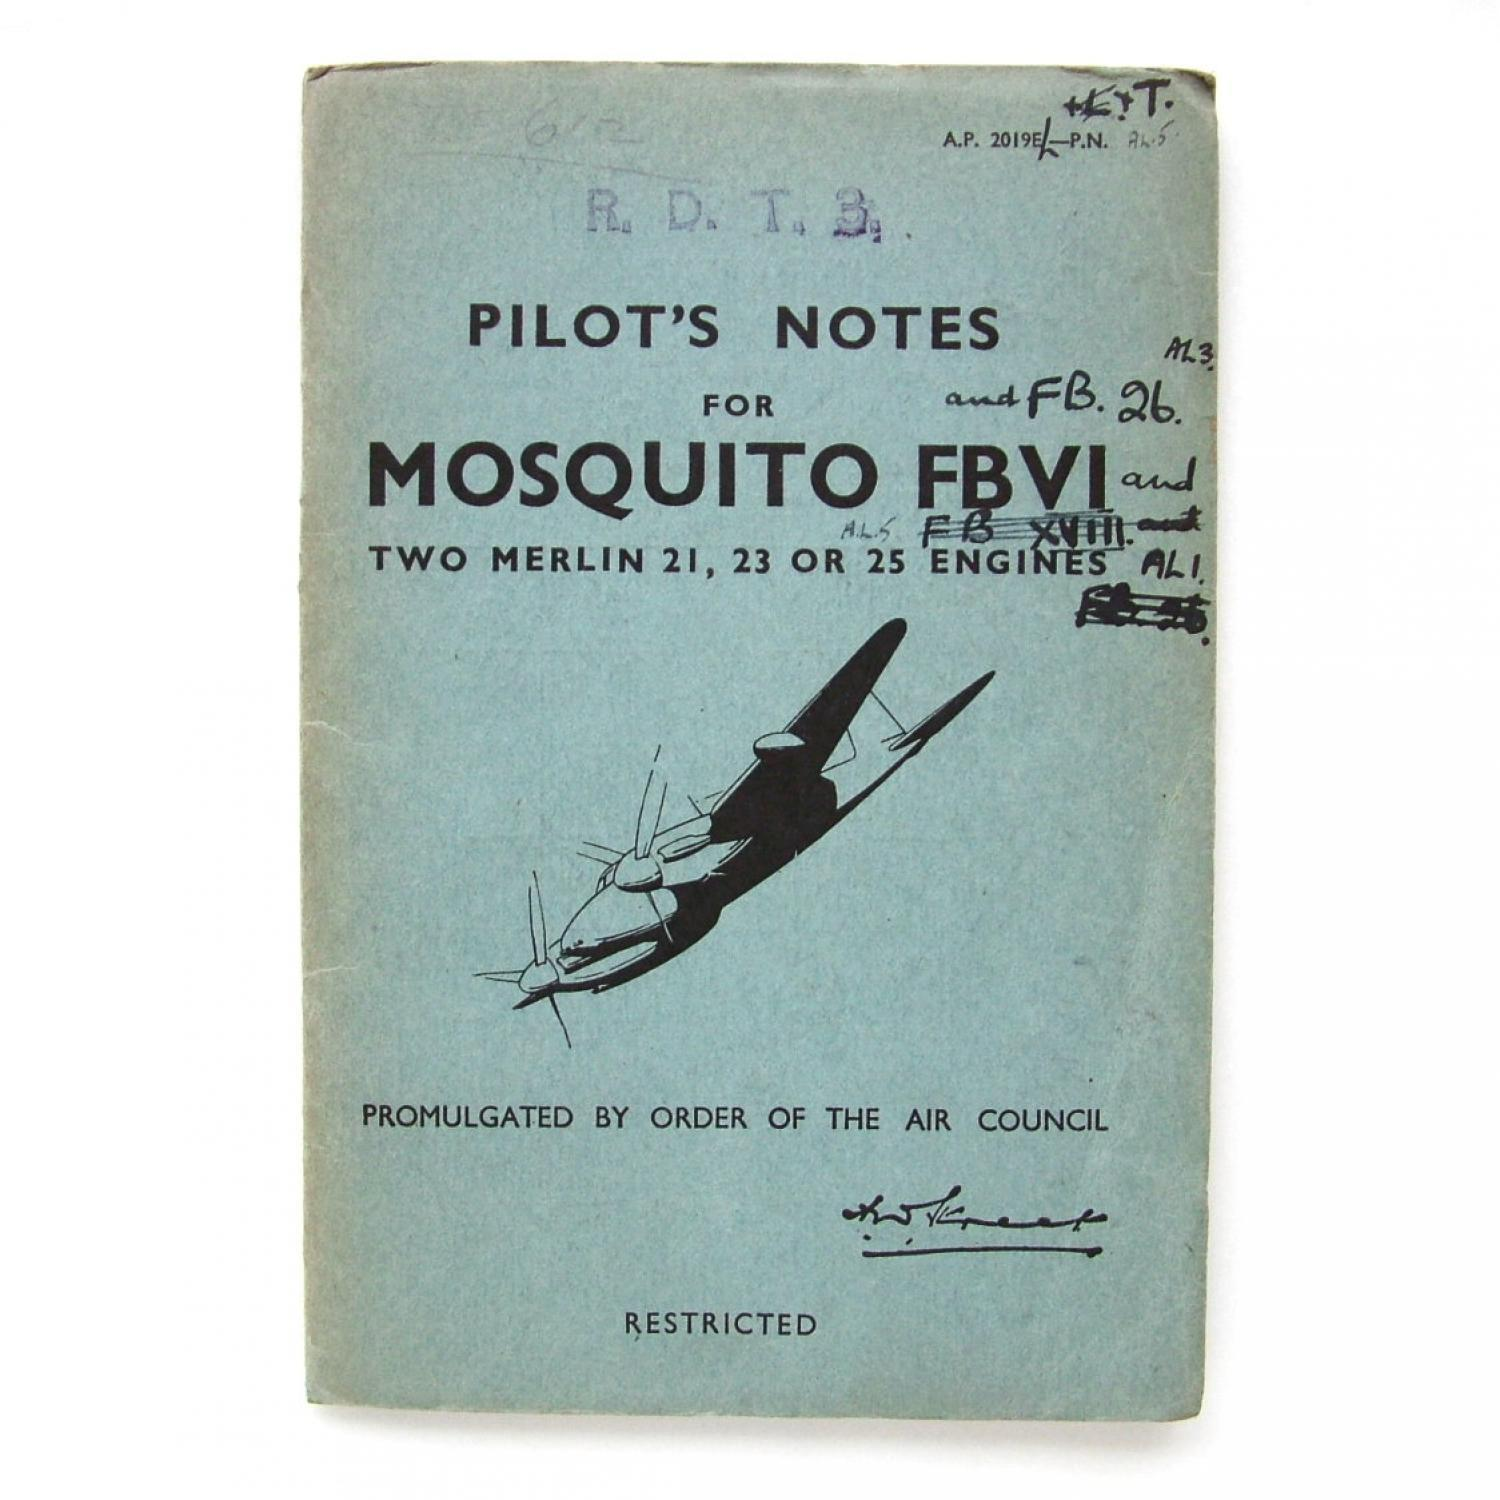 RAF Pilot's Notes : Mosquito FBVI - FB.26